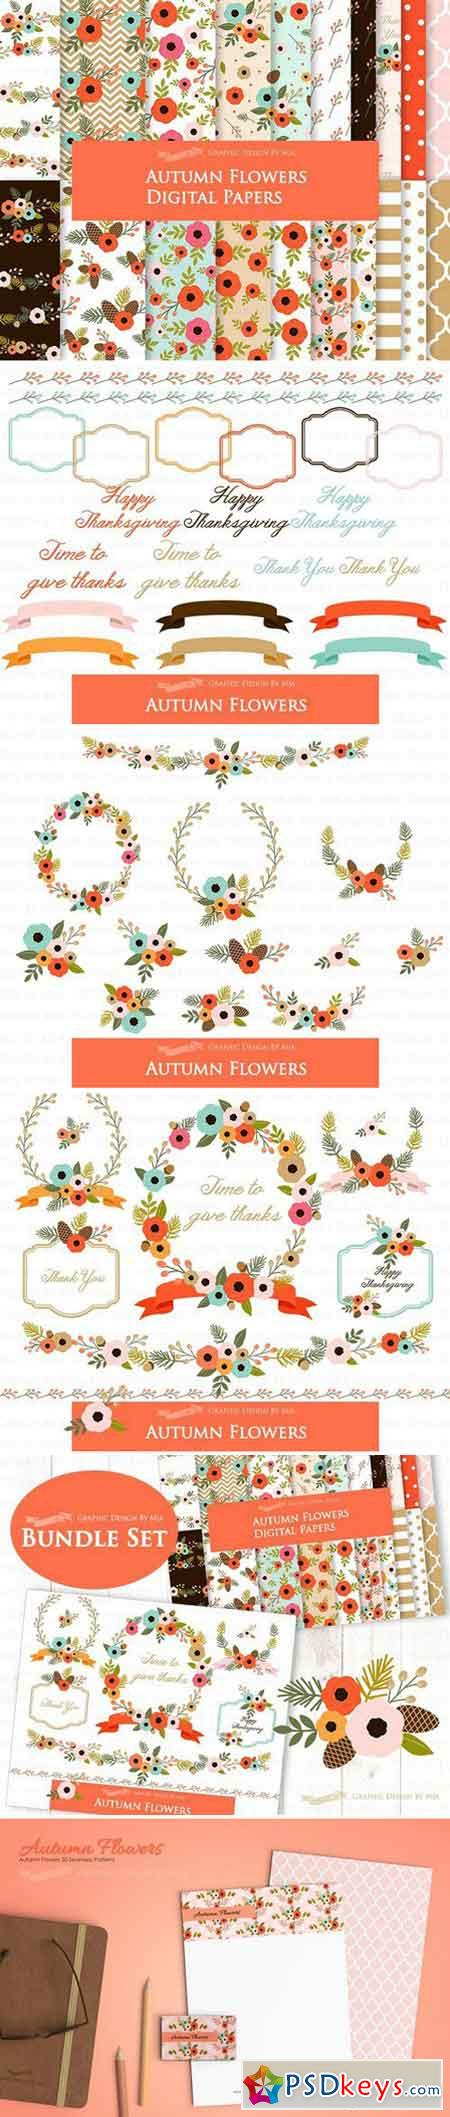 Autumn Flowers Clipart+Pattern set 1901243